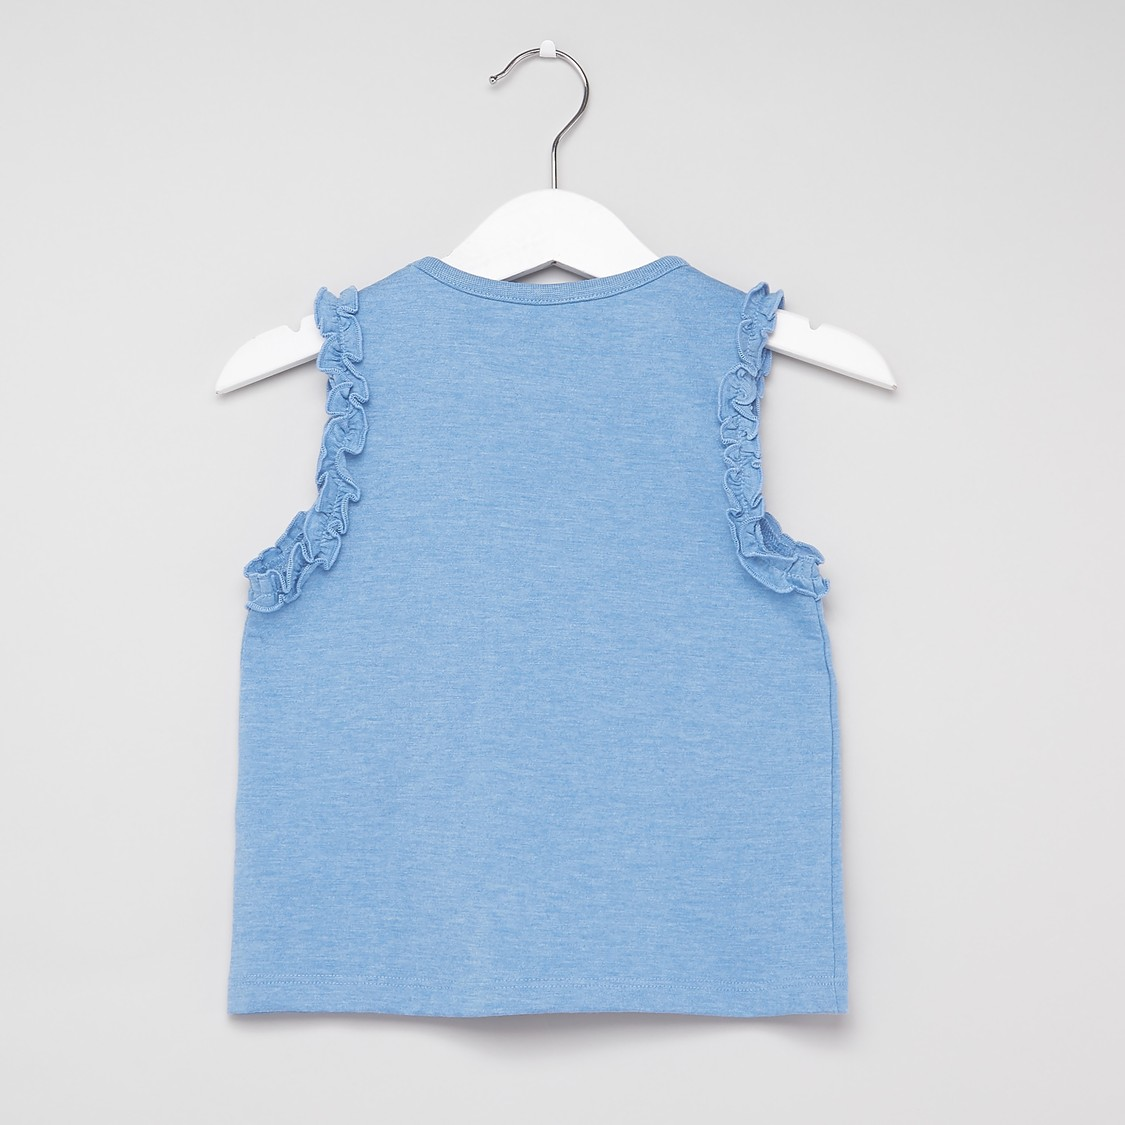 Printed Sleeveless Vest Top with Round Neck and Frill Detail